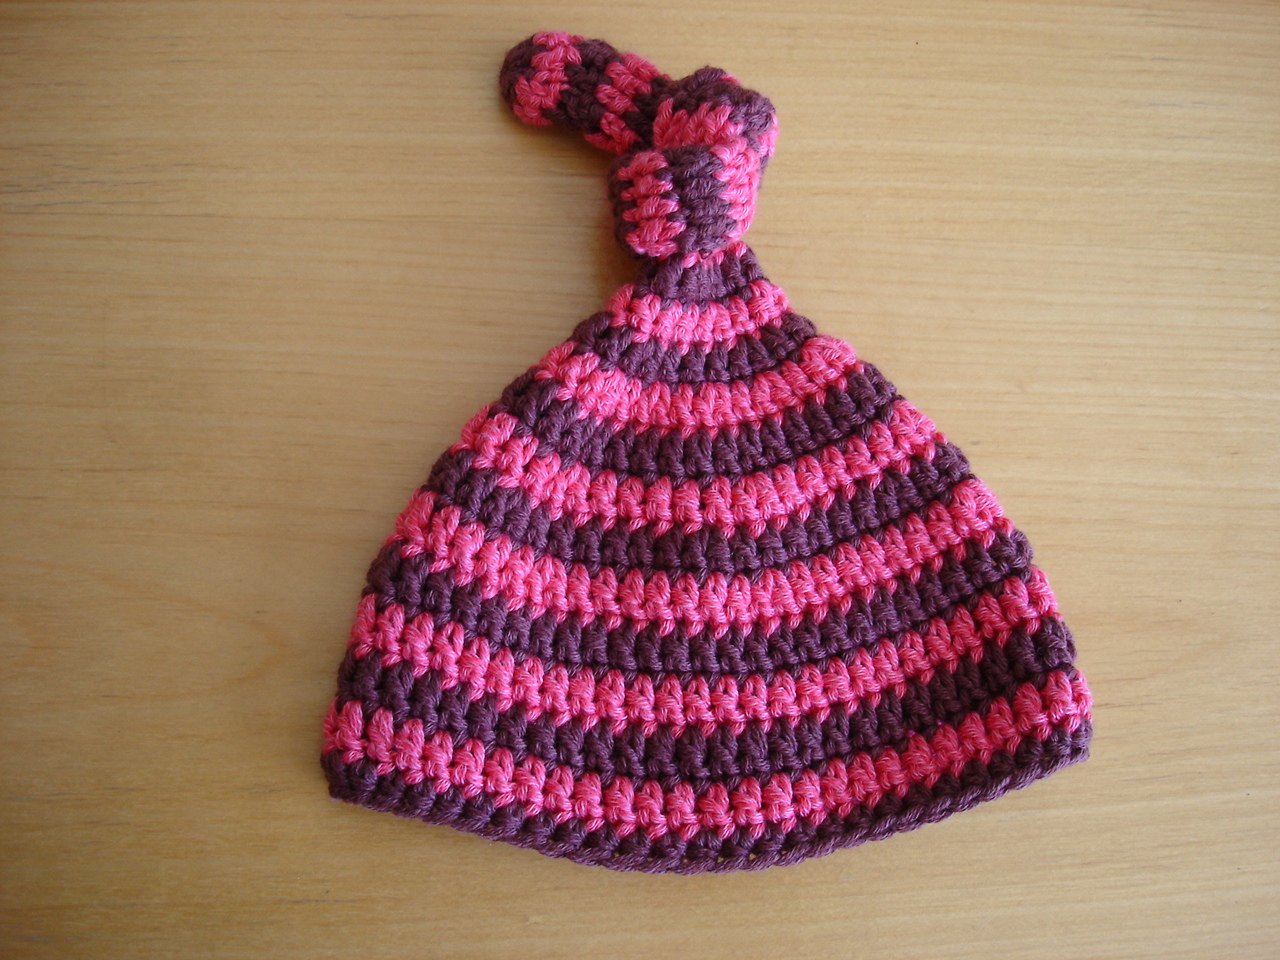 Free Crochet Pattern For Baby Leprechaun Hat : Is it a toy: Topknot stripes baby hat